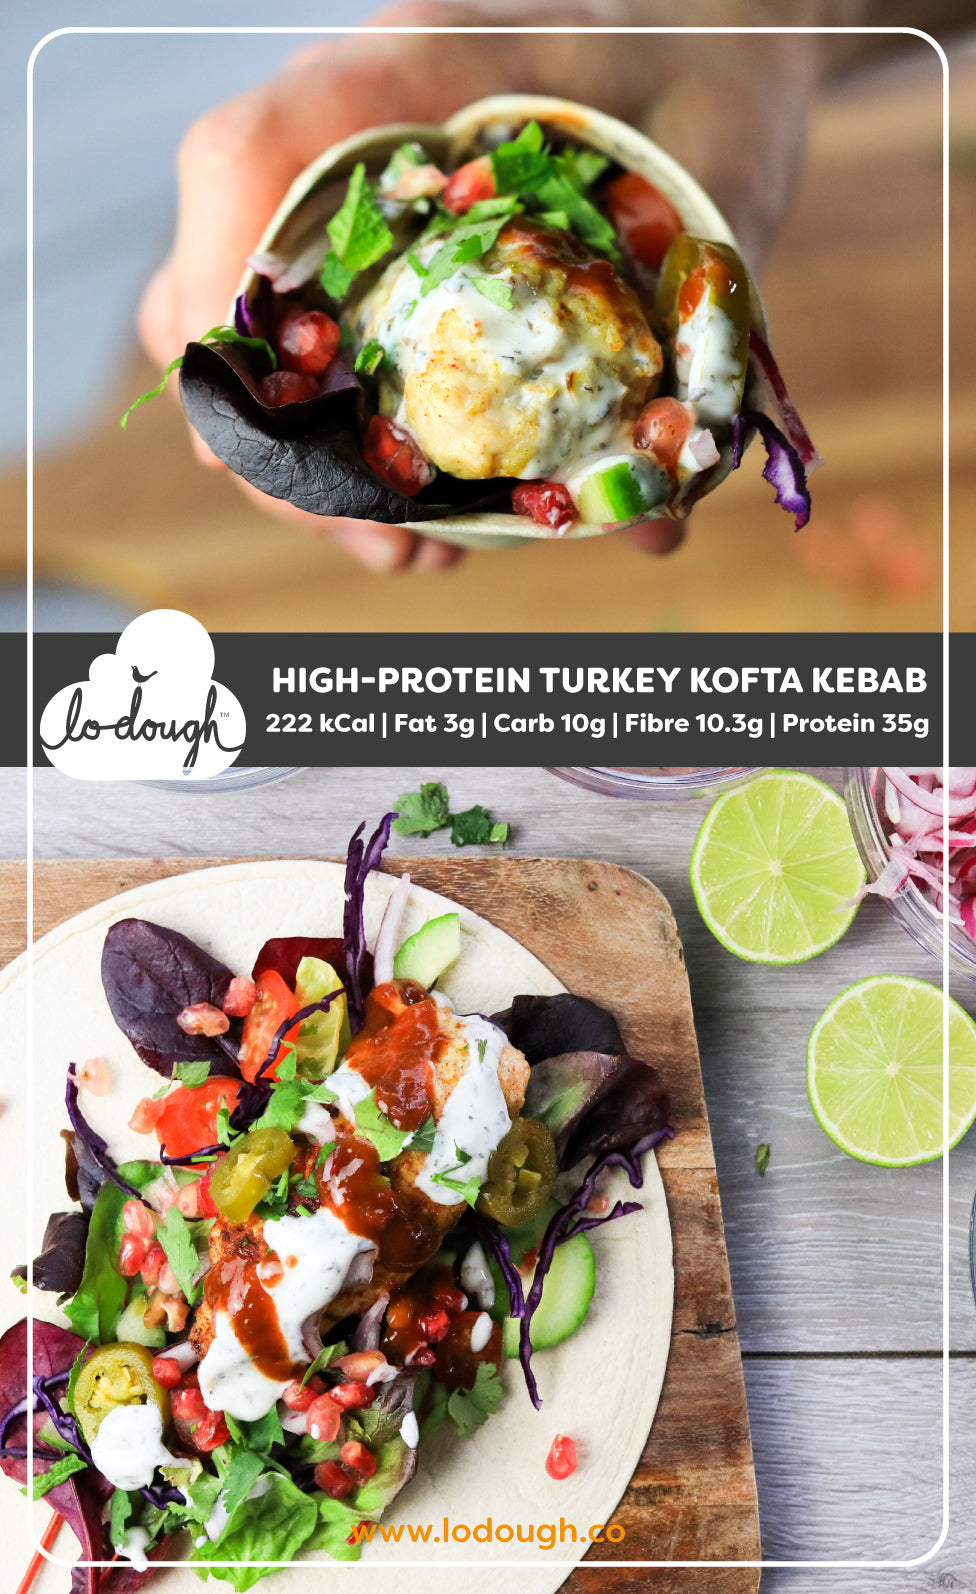 High-Protein Turkey Kofta Kebab